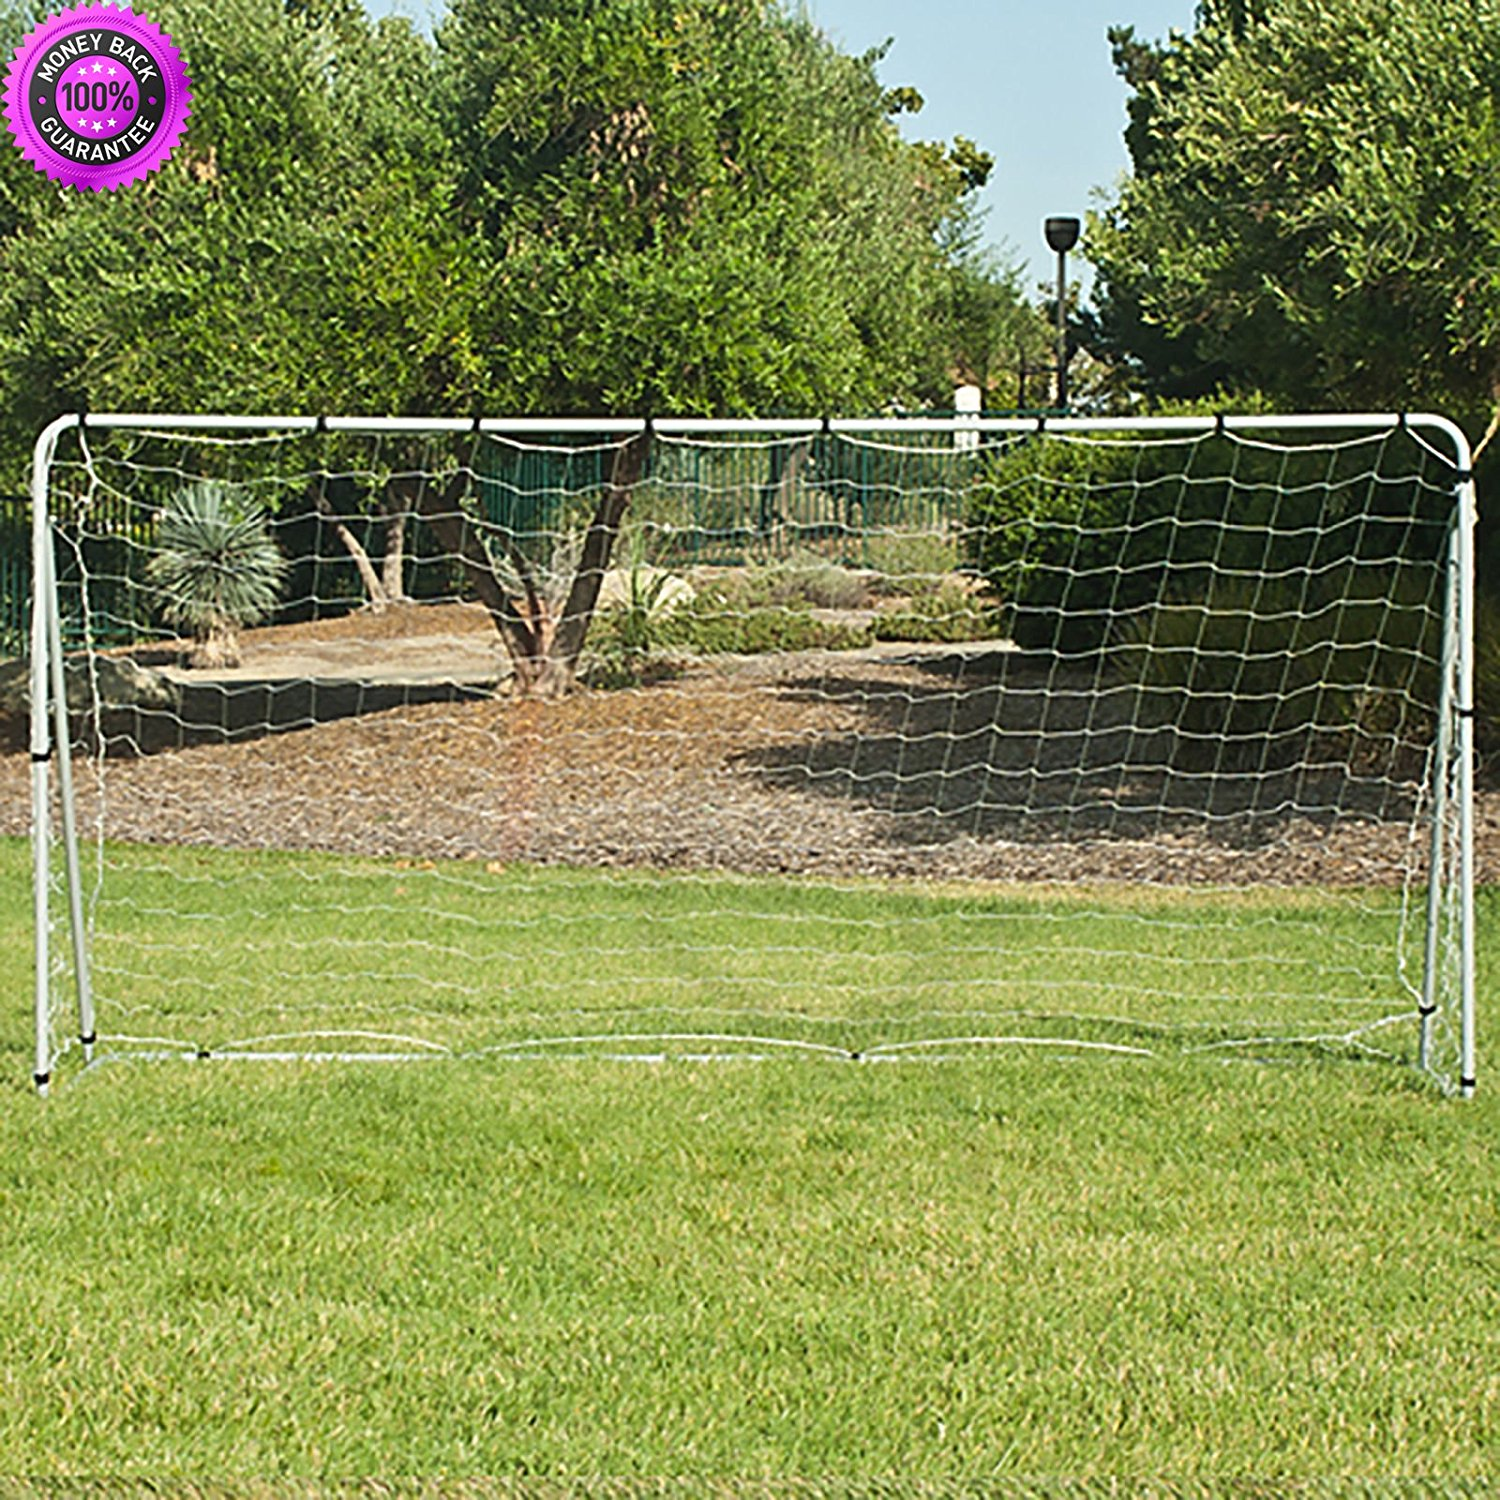 9f2a0adf1 Get Quotations · DzVeX 12' x 6' Soccer Goal With Net, Straps, Anchor Large  Soccer